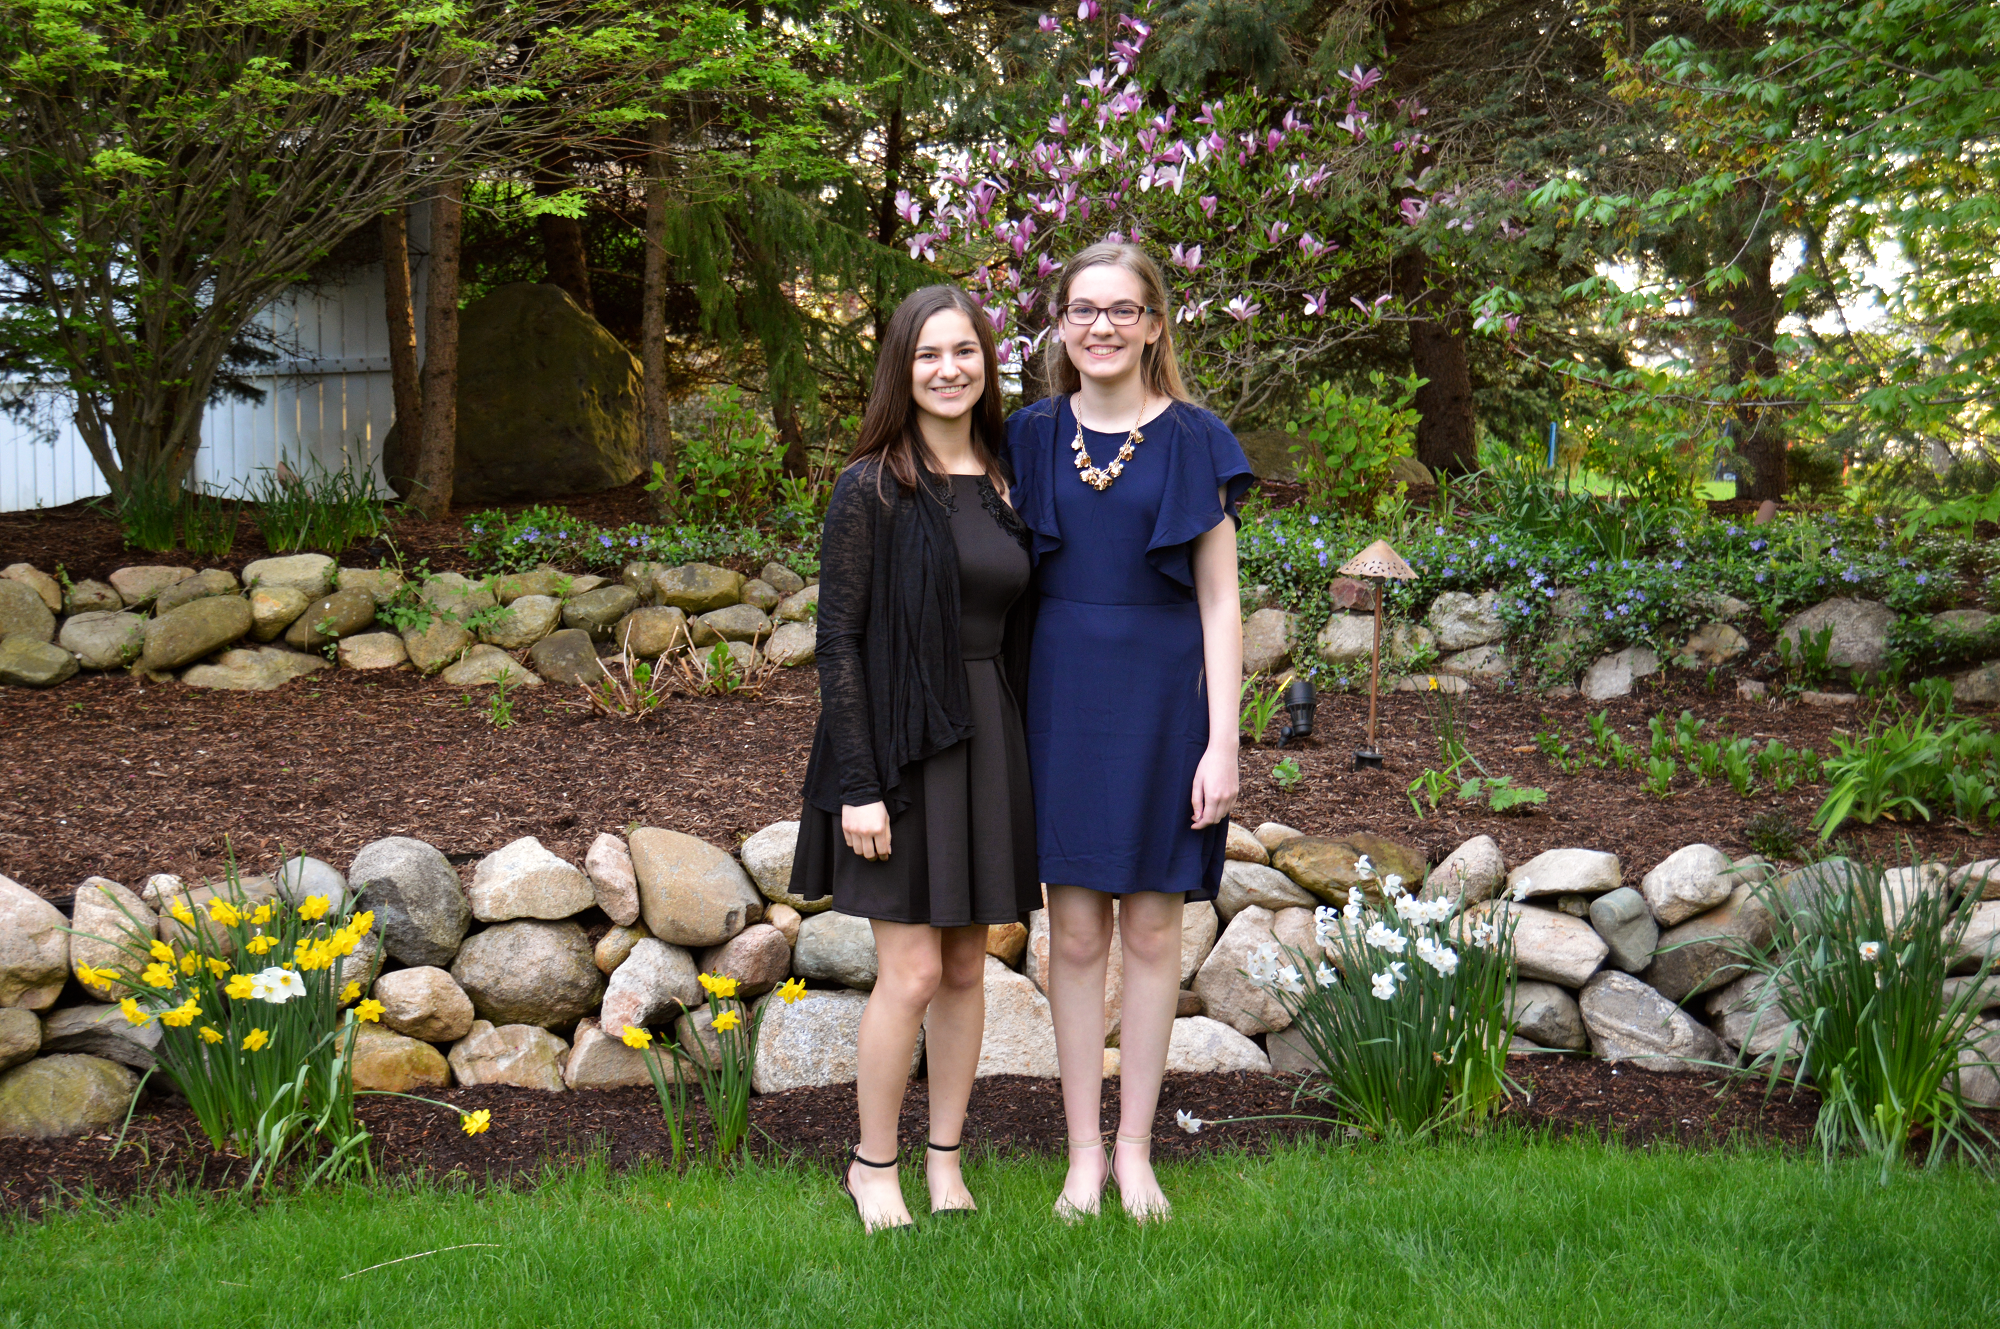 Lilly Endowment Community Scholars Vanessa Cardona (left) and Emma Johnson (right).